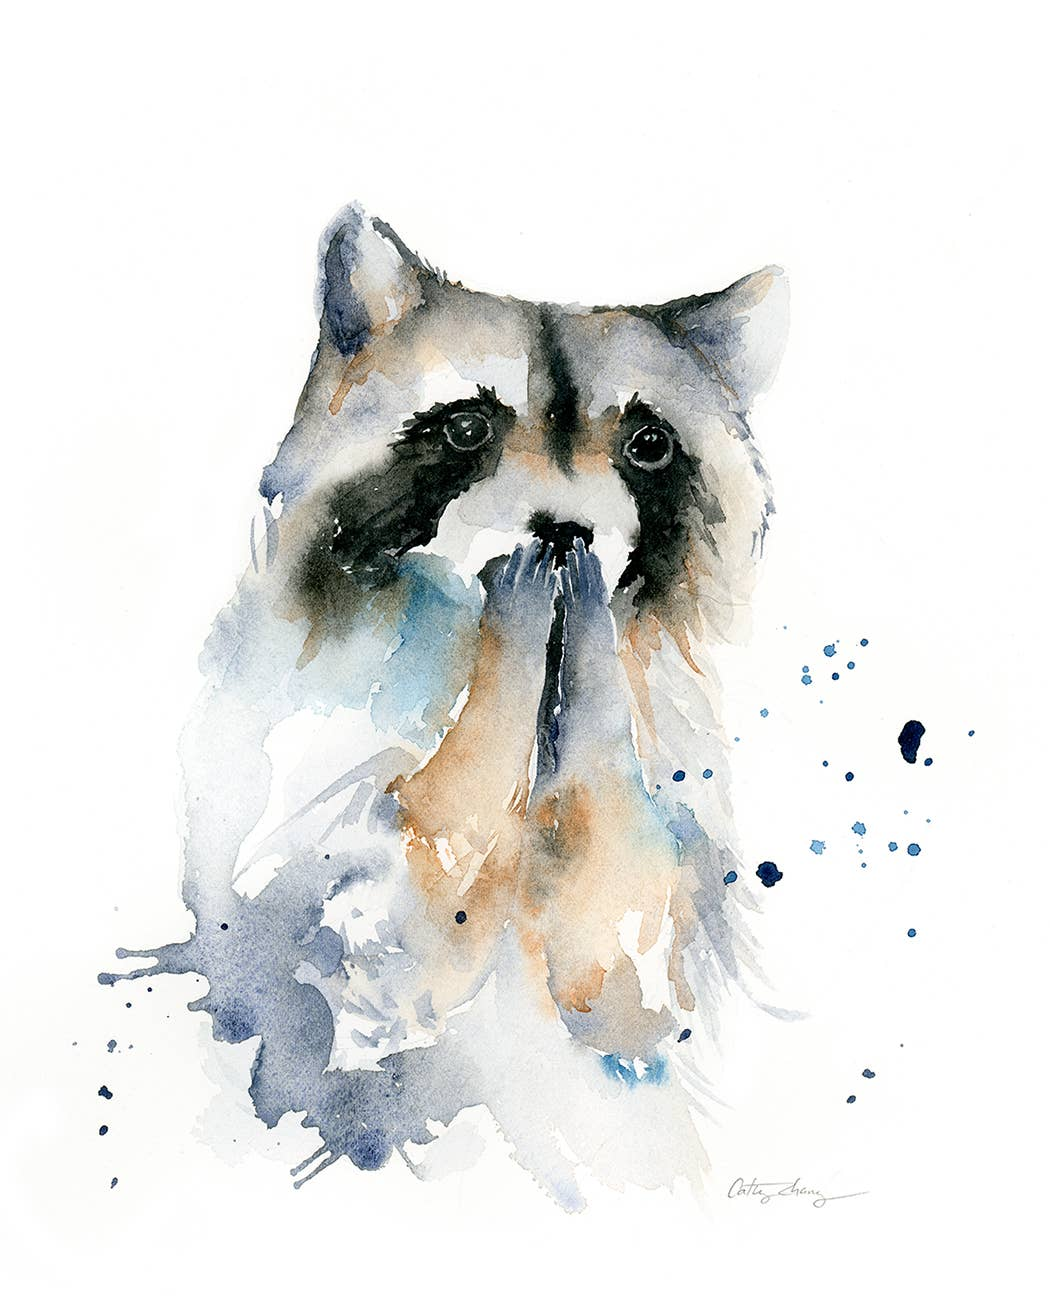 Excited Raccoon Watercolor Art Print | Trada Marketplace